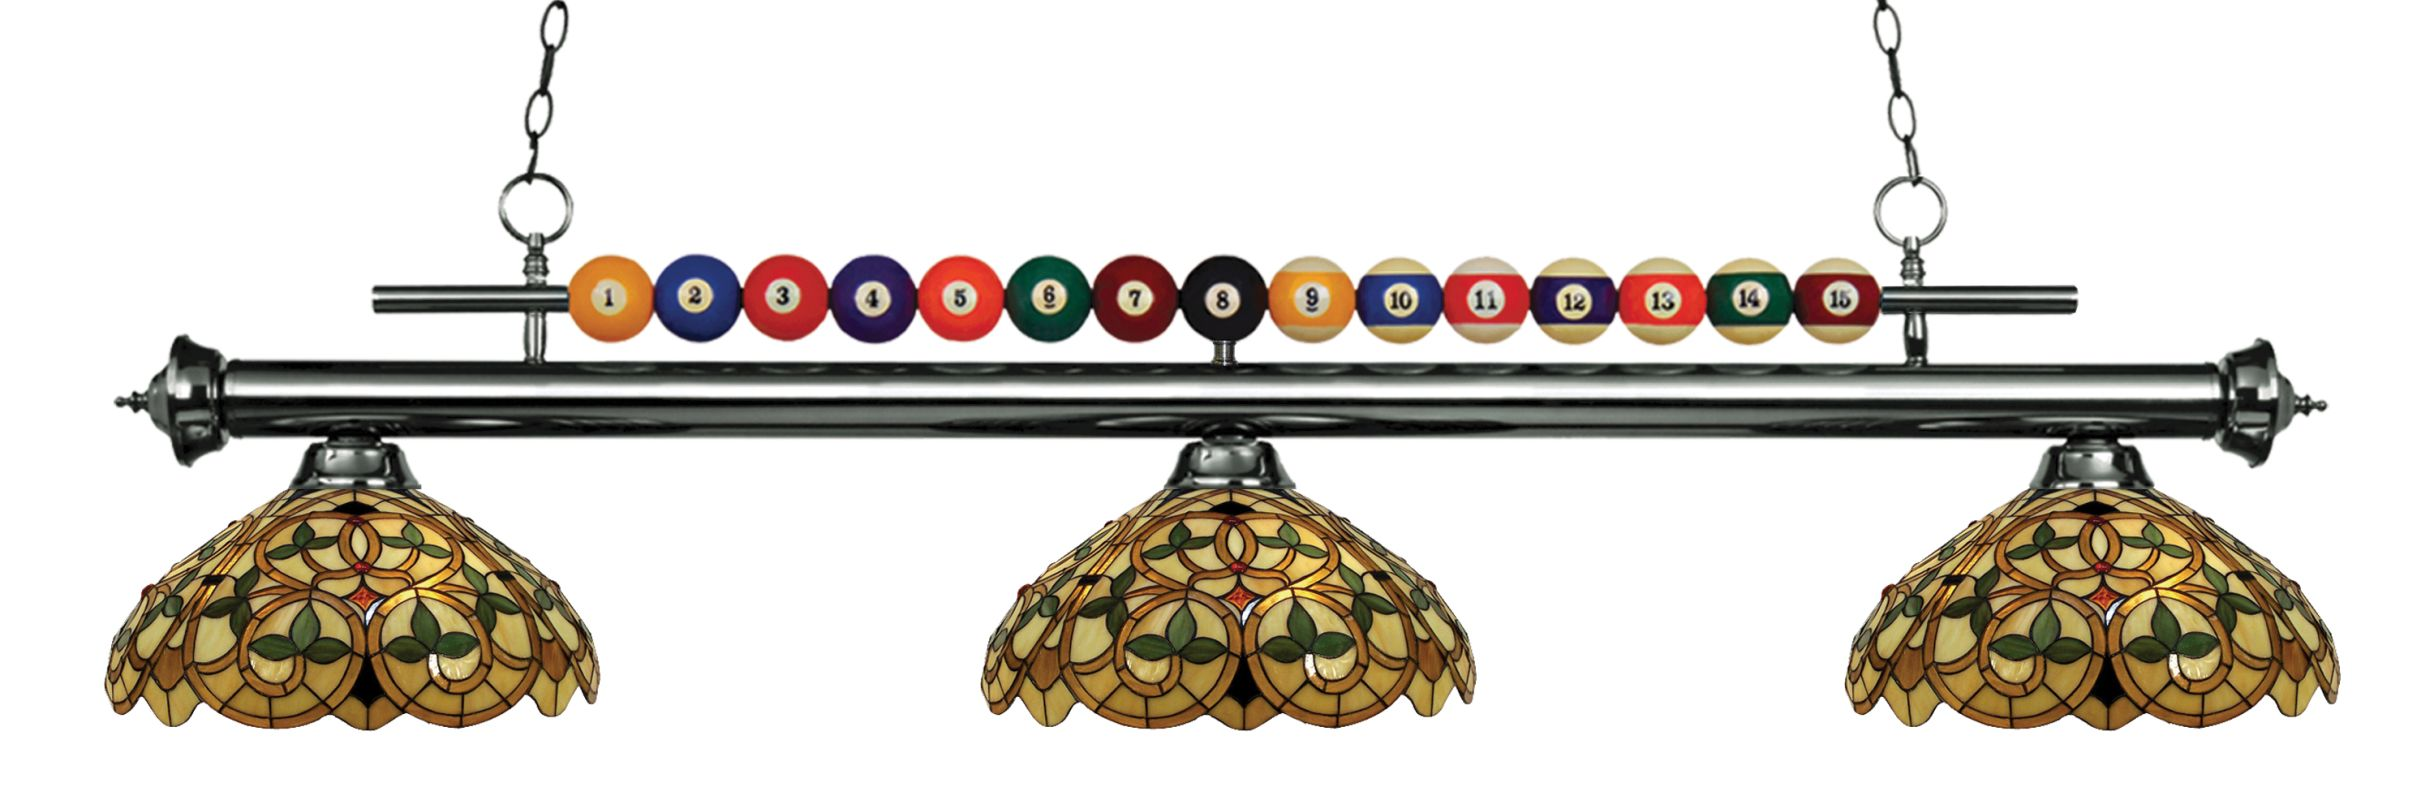 Z-Lite 170-C14 Shark 3 Light Billiard Chandelier with Multi-Colored Sale $1000.00 ITEM: bci2630317 ID#:170GM-C14 UPC: 685659048780 :